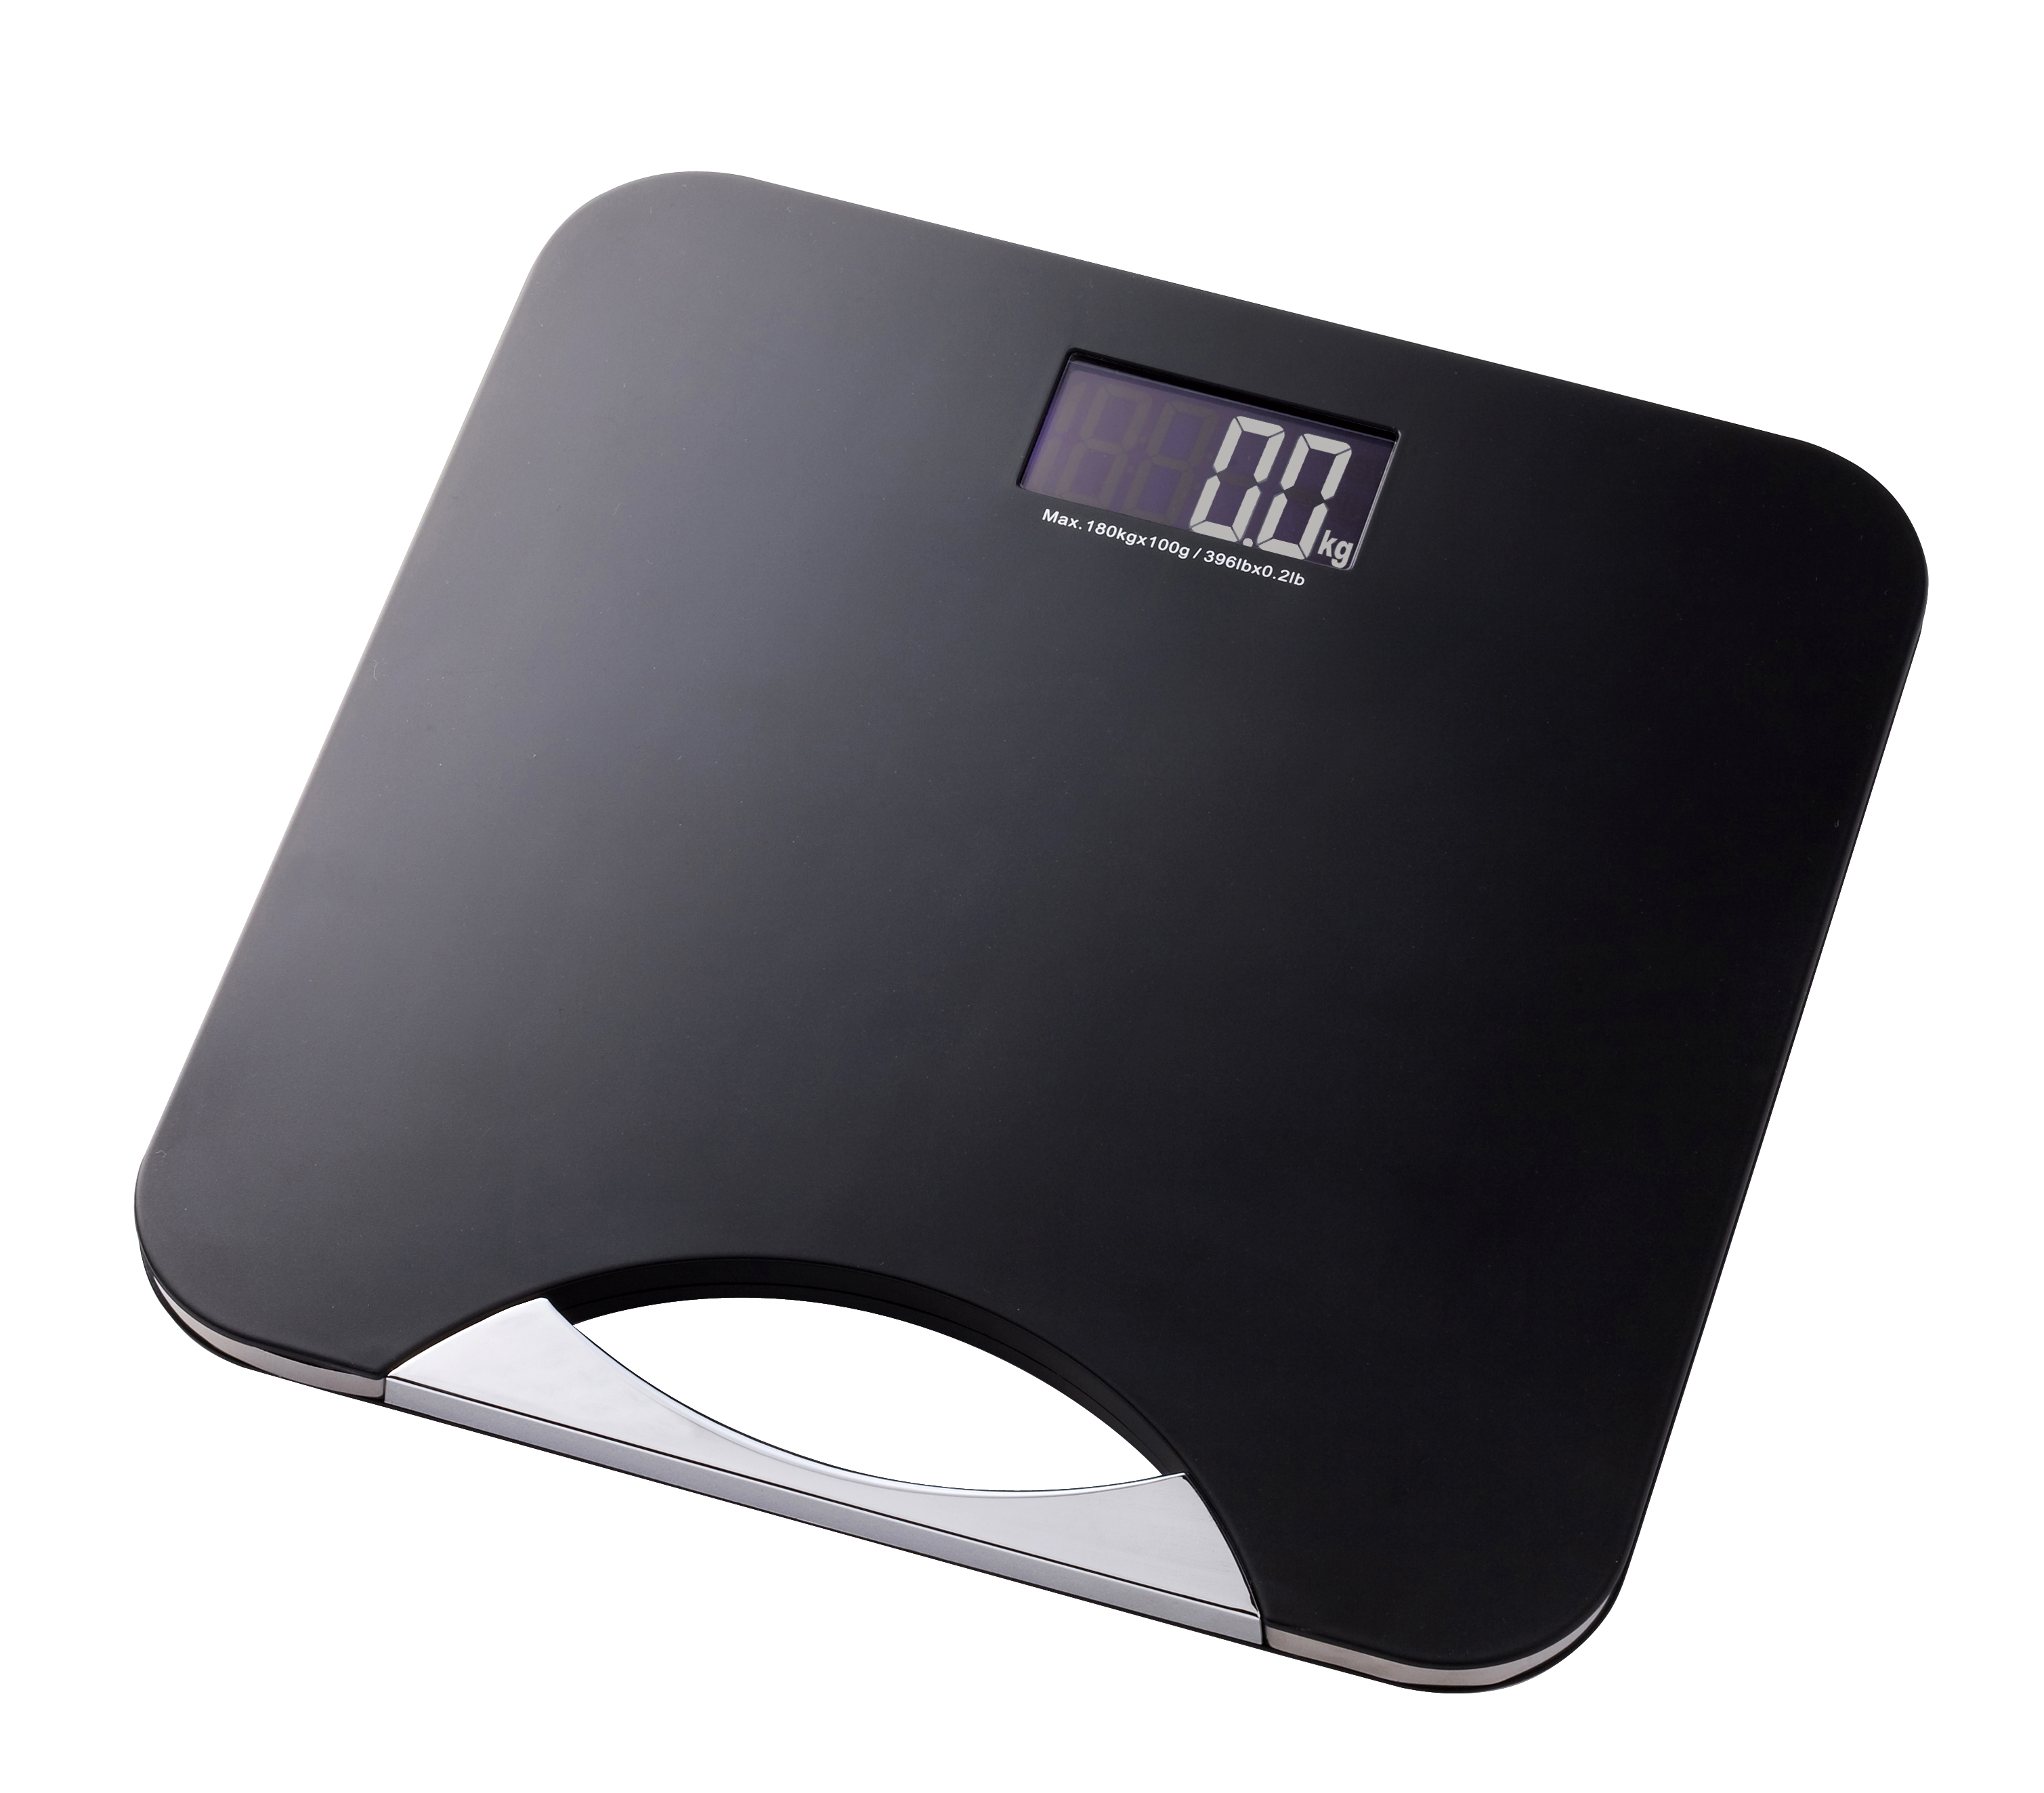 best ihealth smart core body wireless asia scales scale of pcmag healthandfitness composition guide the bathroom